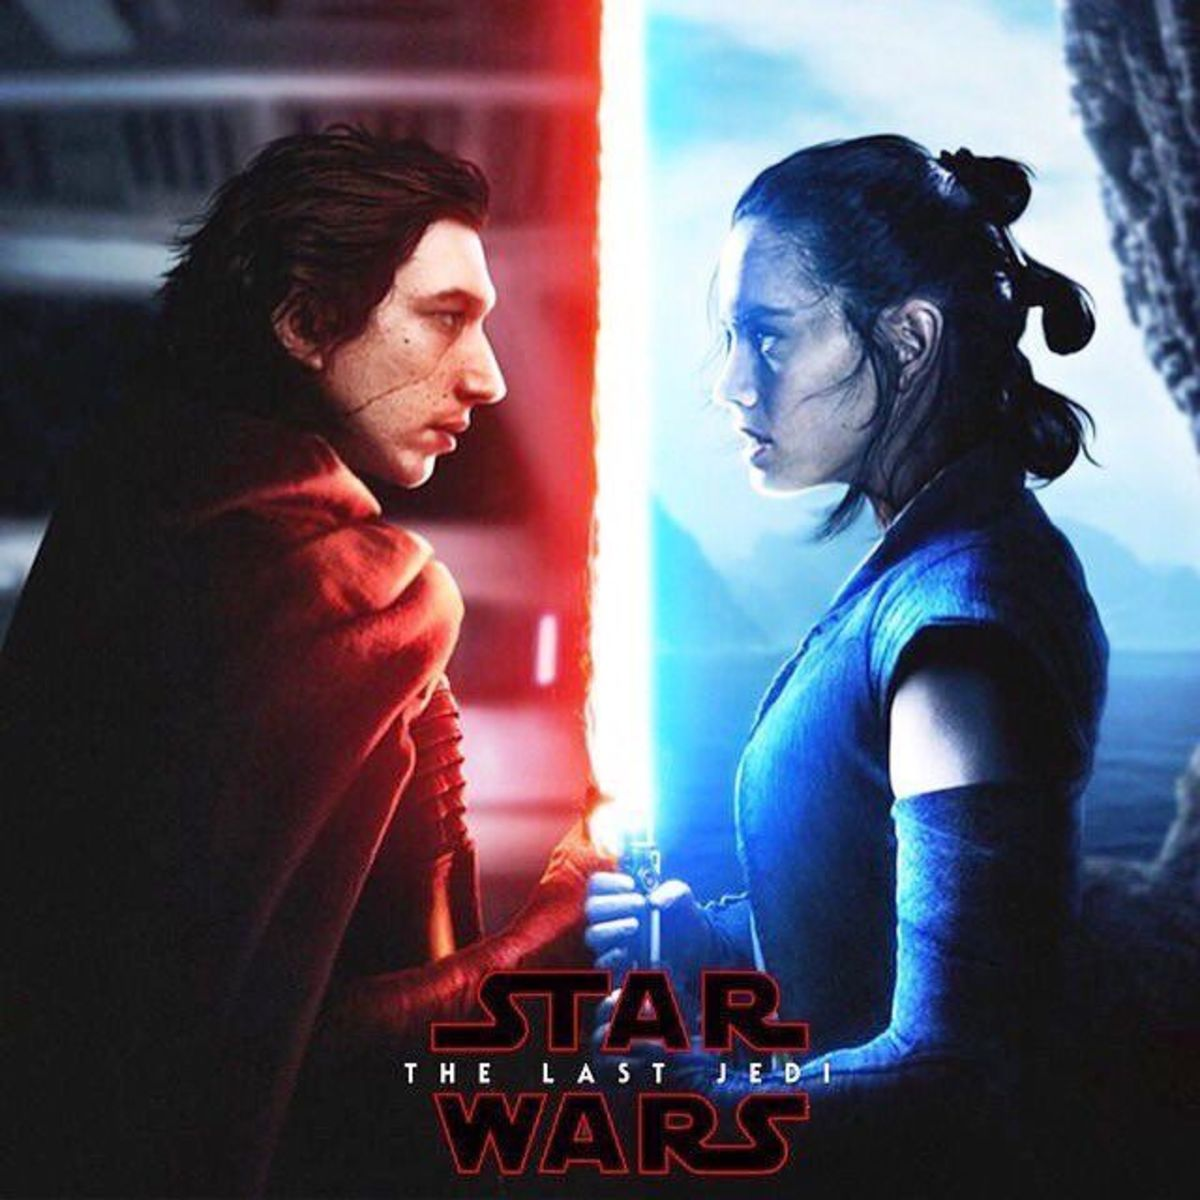 Reylo in Star Wars: The Last Jedi